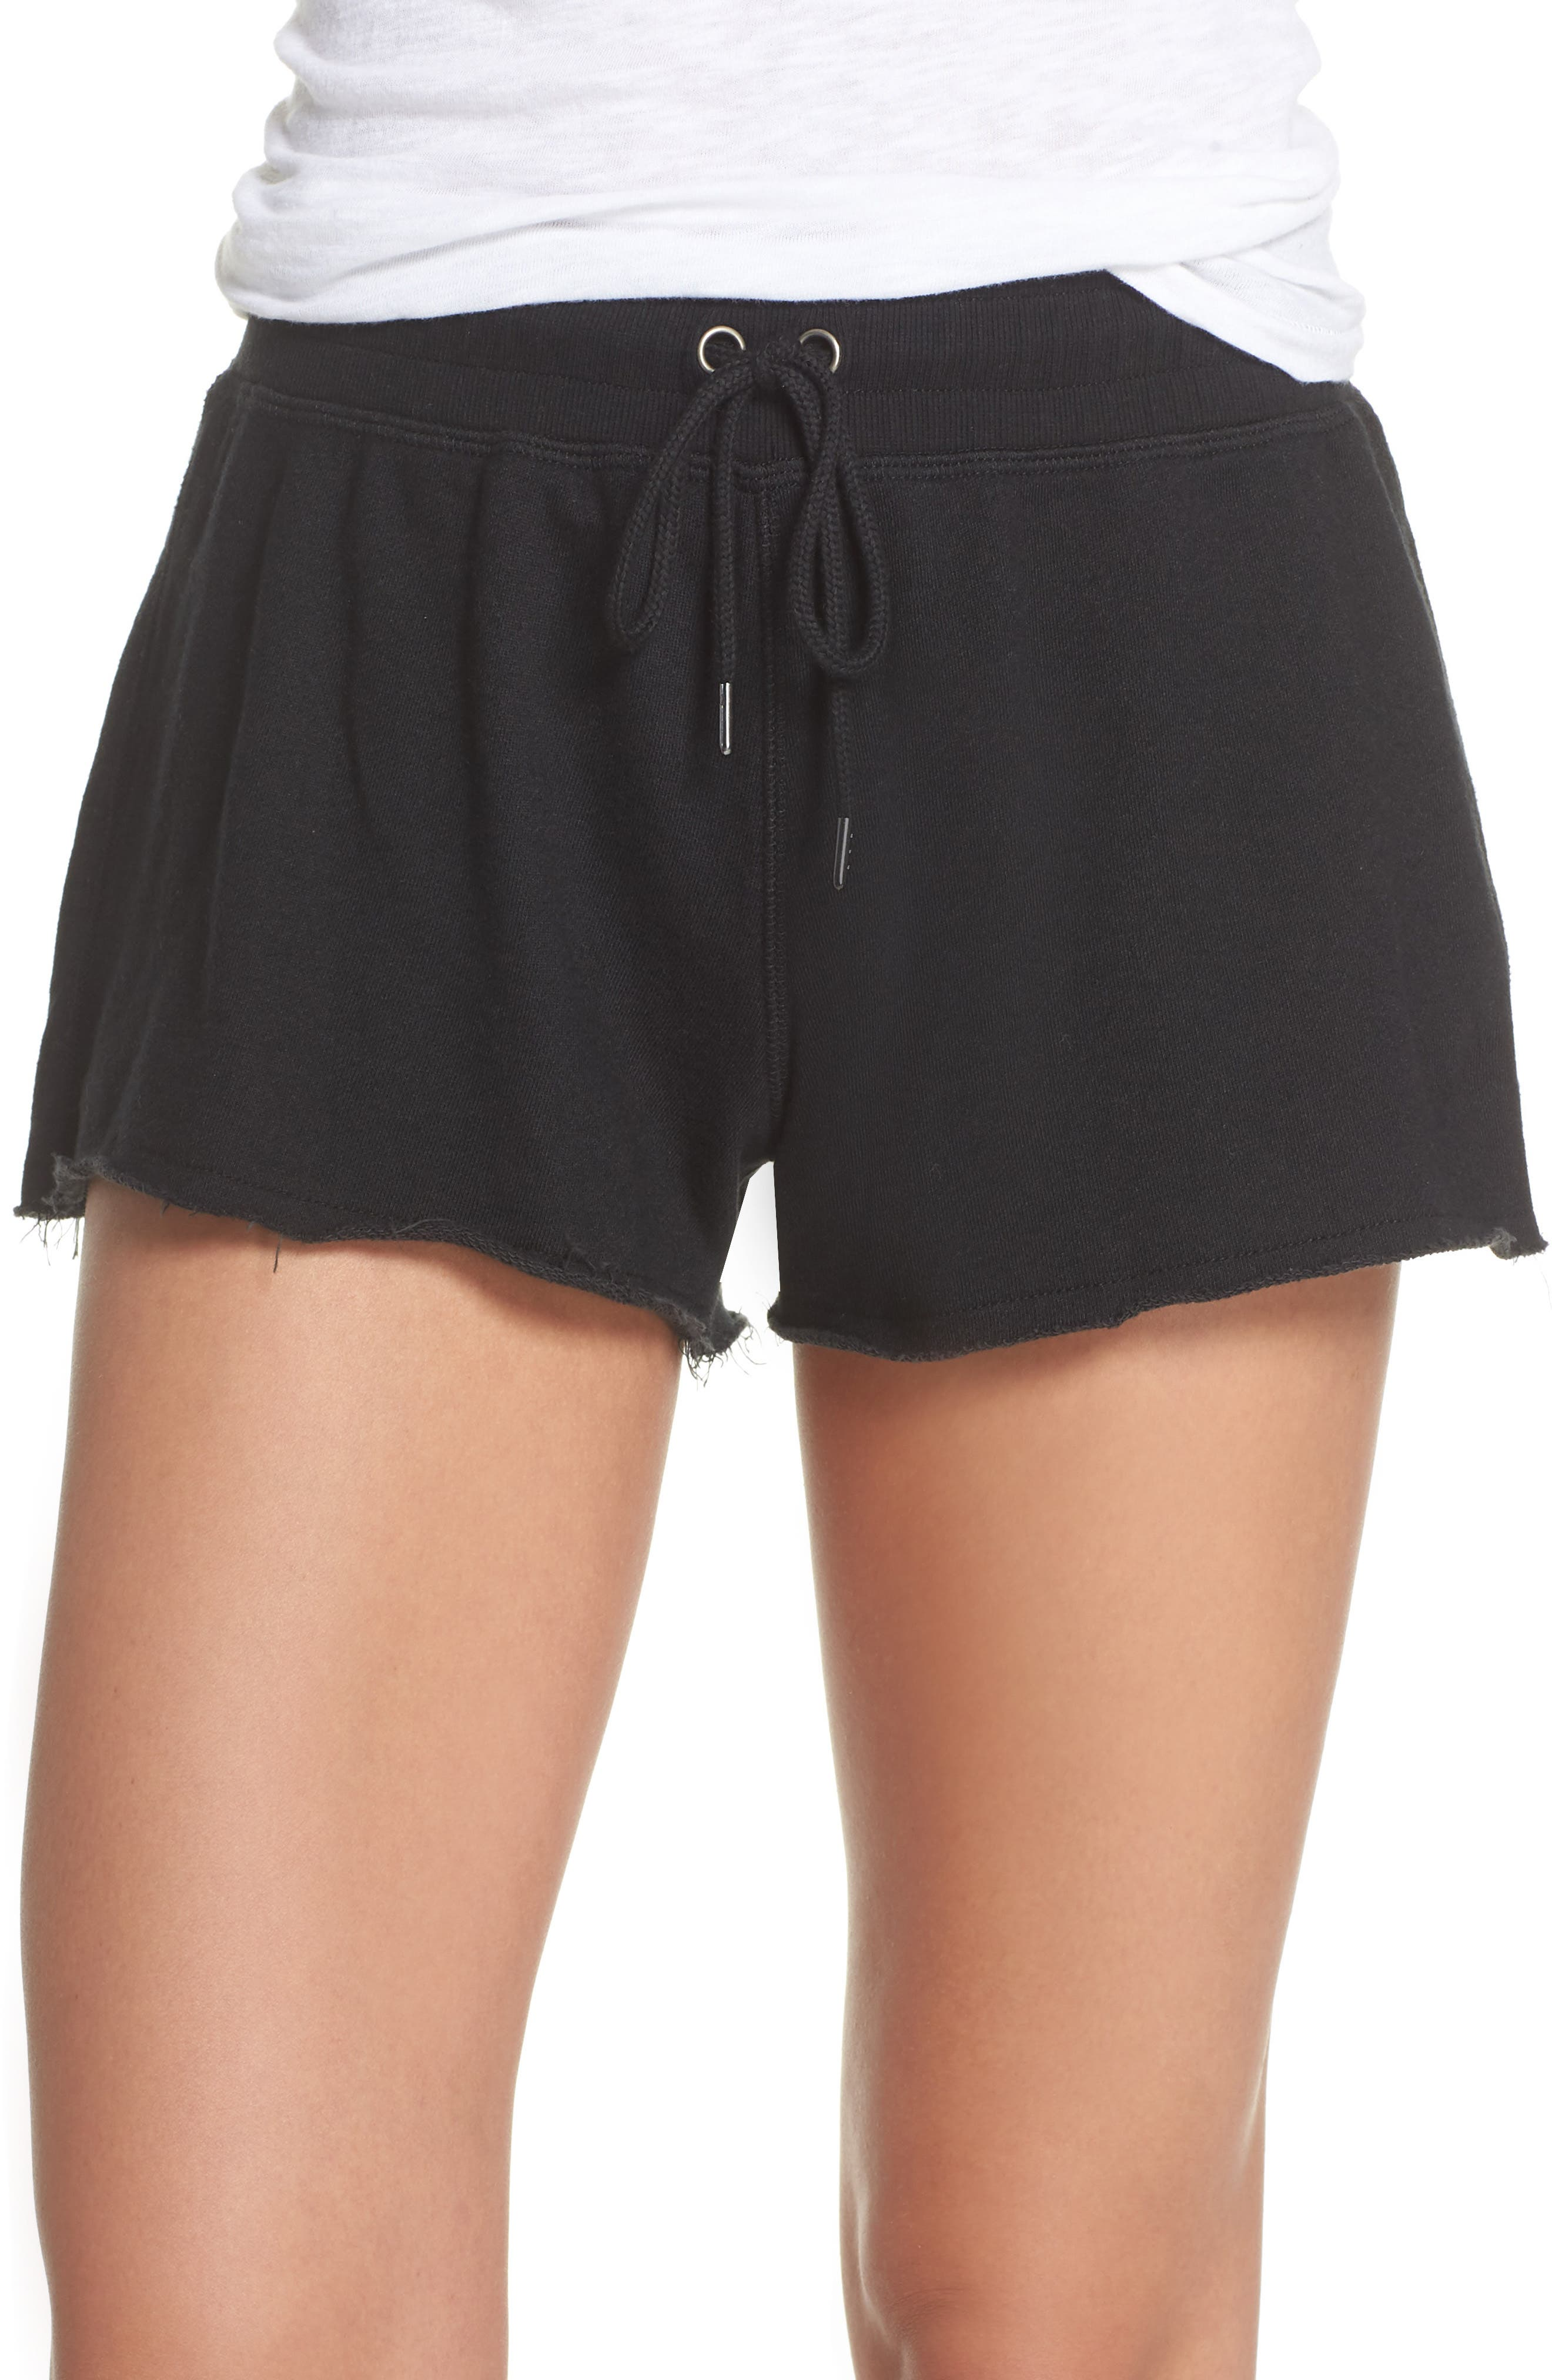 French Terry Sleep Shorts,                             Main thumbnail 1, color,                             Faded Black